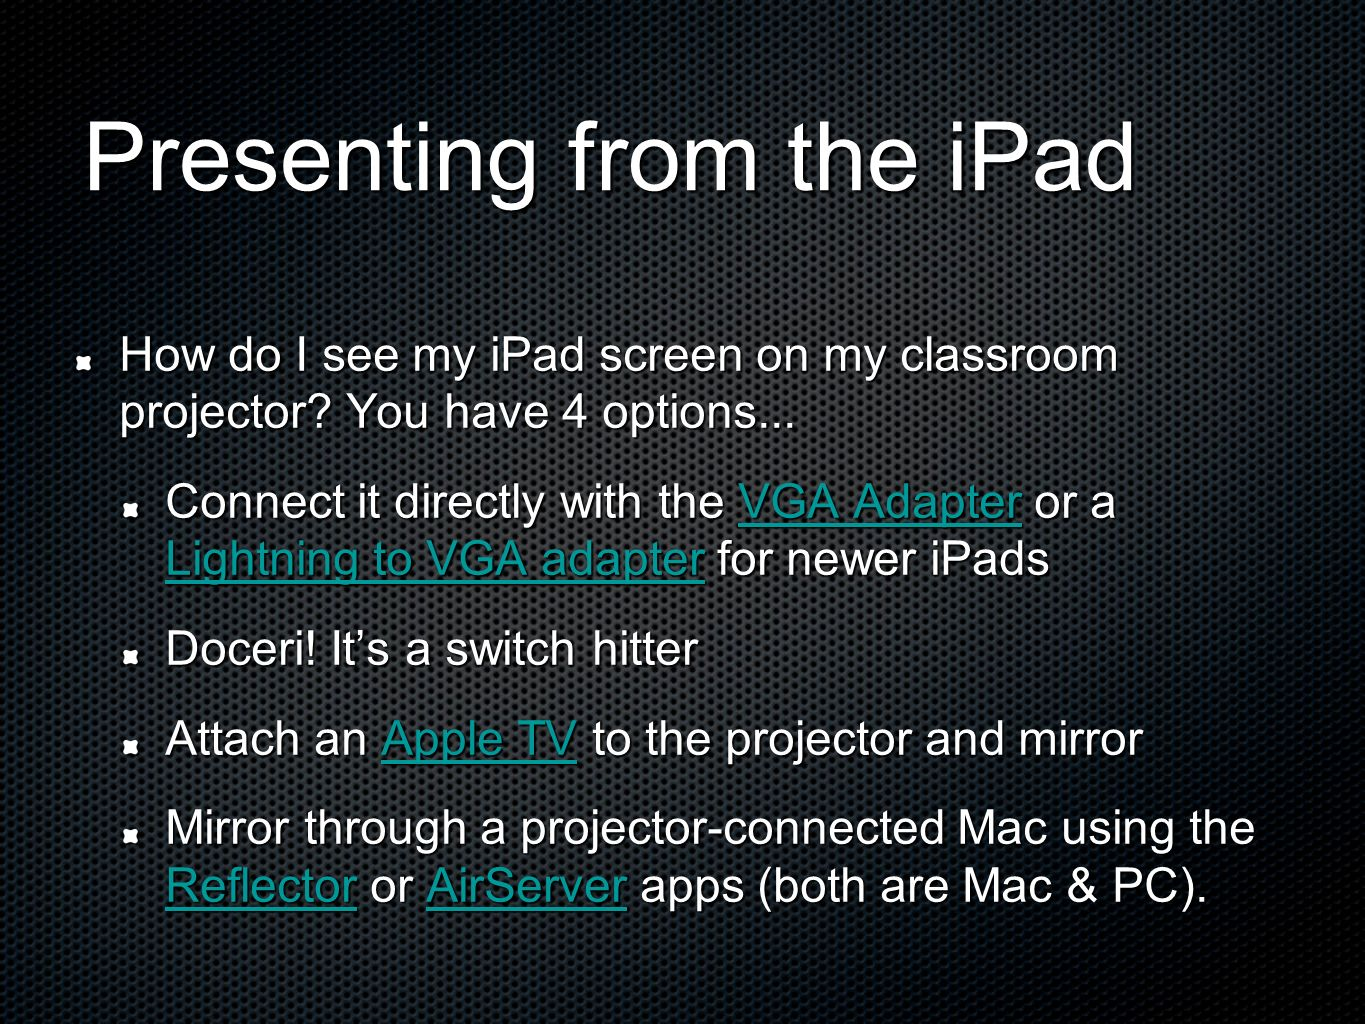 Presenting from the iPad